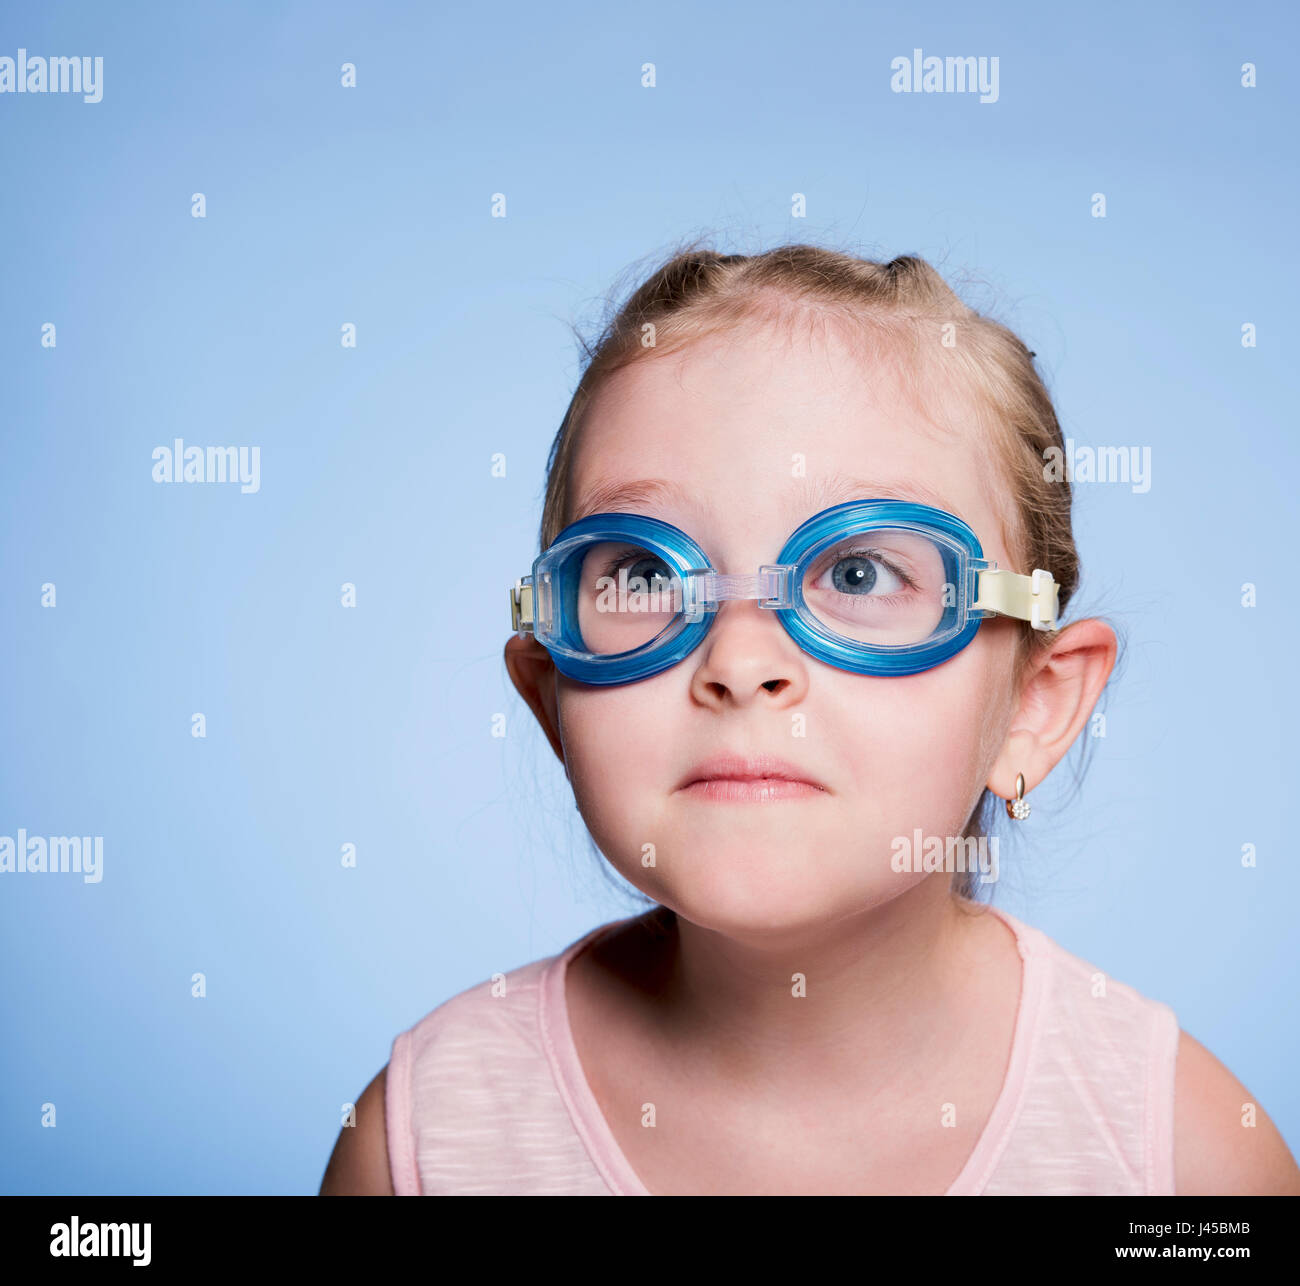 fd4bab8ff2fa Spoiled Child Stock Photos & Spoiled Child Stock Images - Page 3 - Alamy